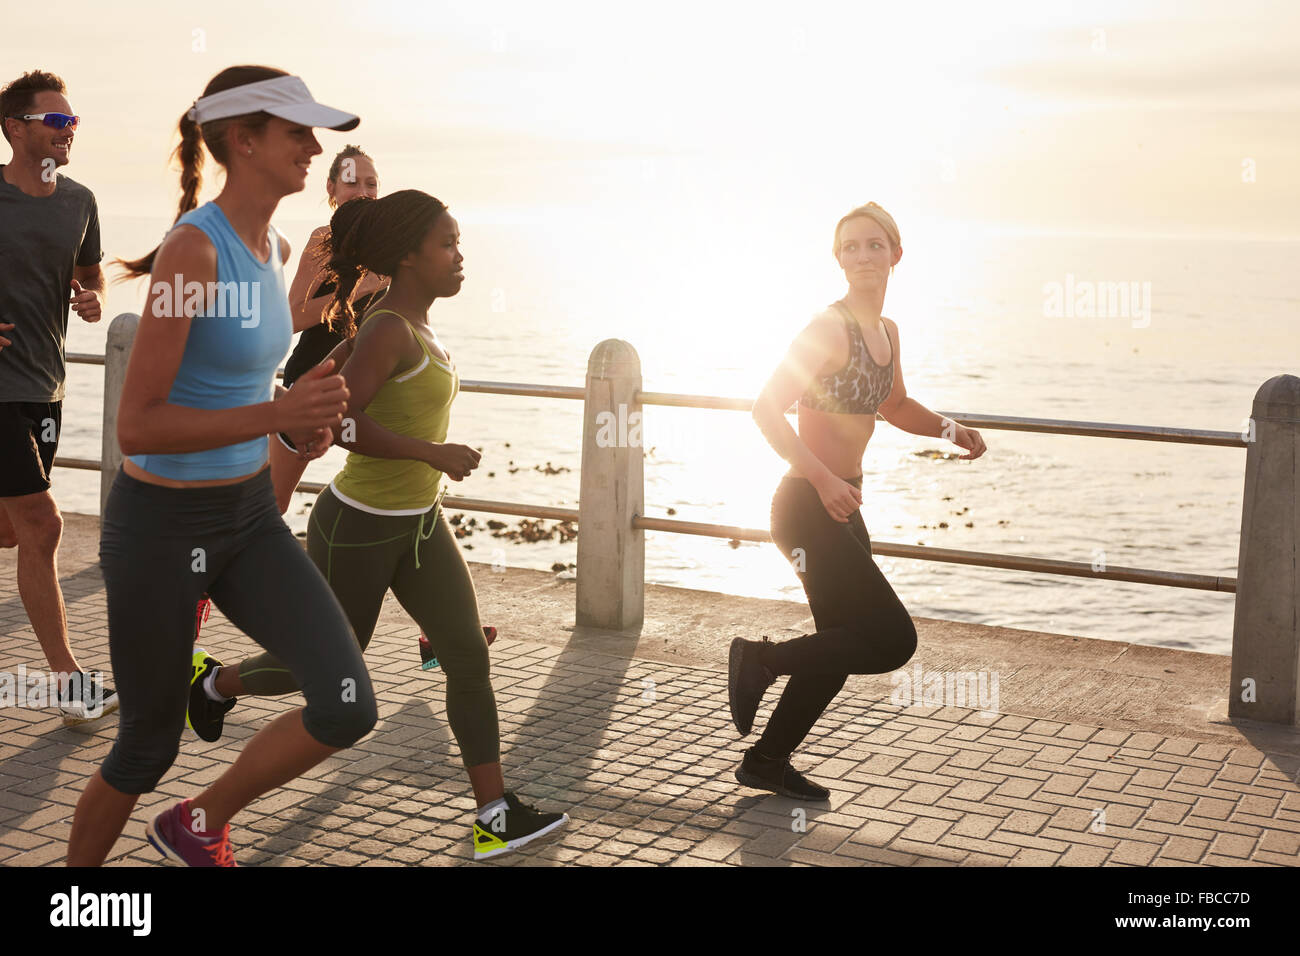 Young people running along seaside at sunset. Closeup image of group of runners working out on a road by the sea. - Stock Image